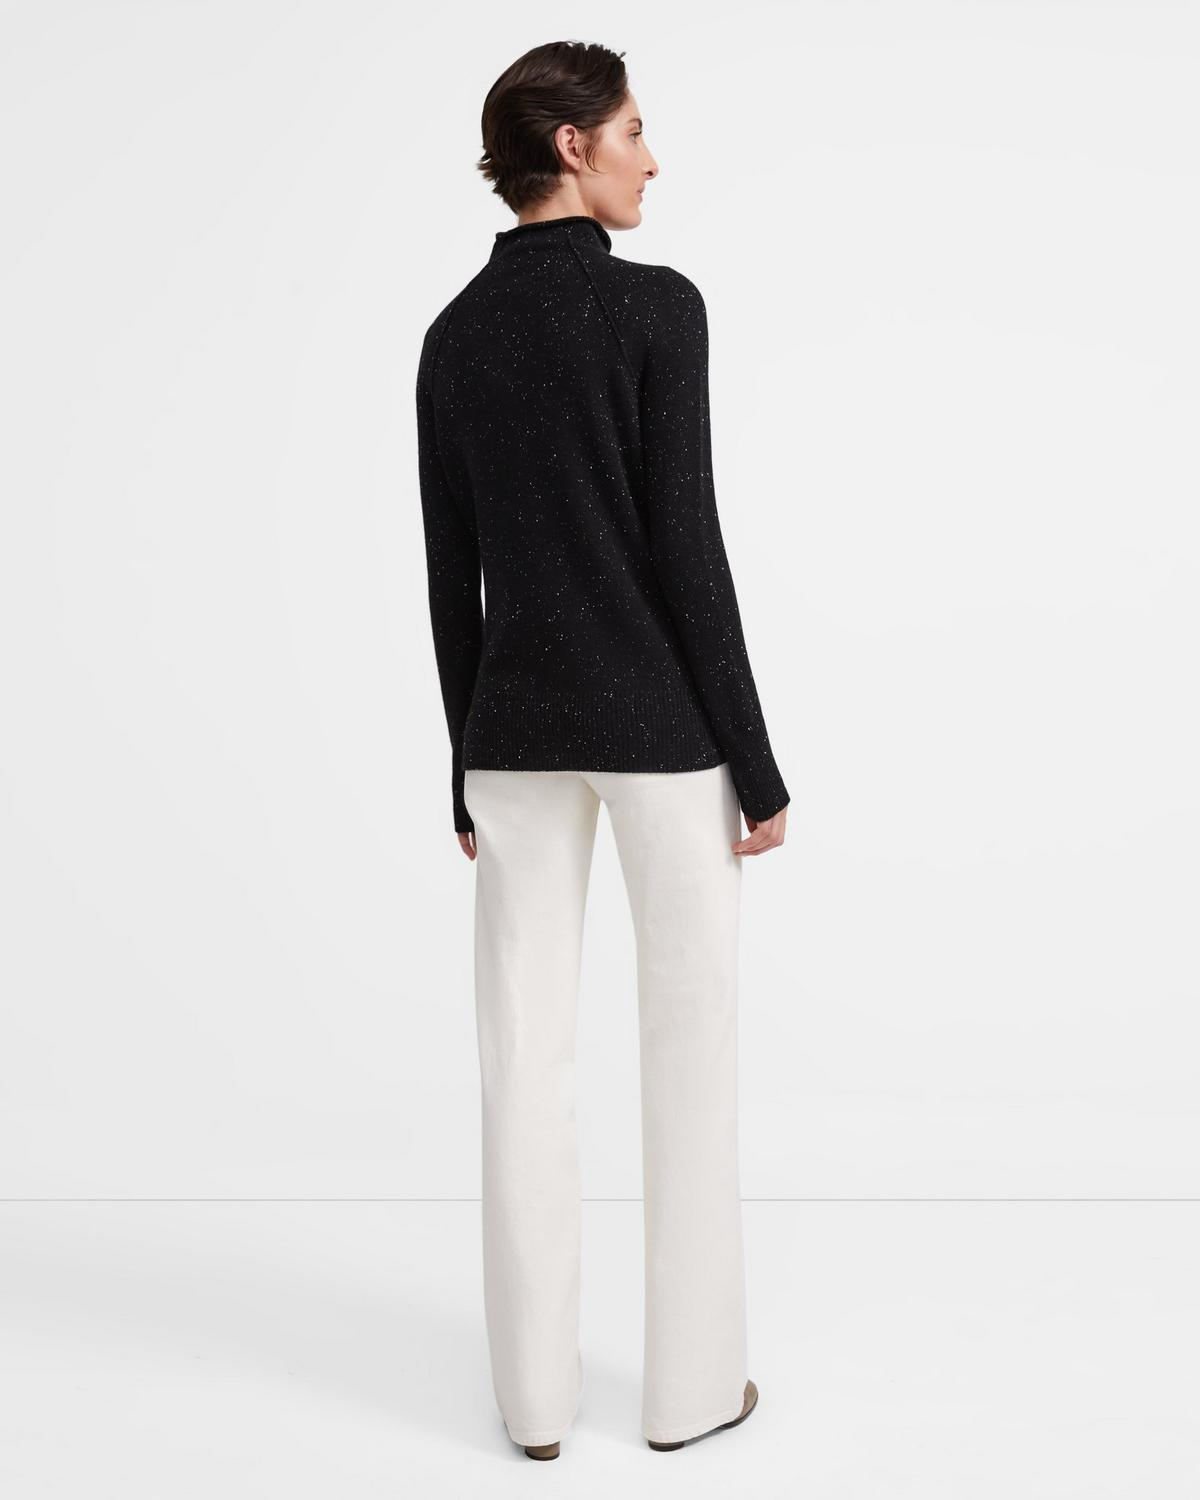 Donegal Cashmere Mock Sweater